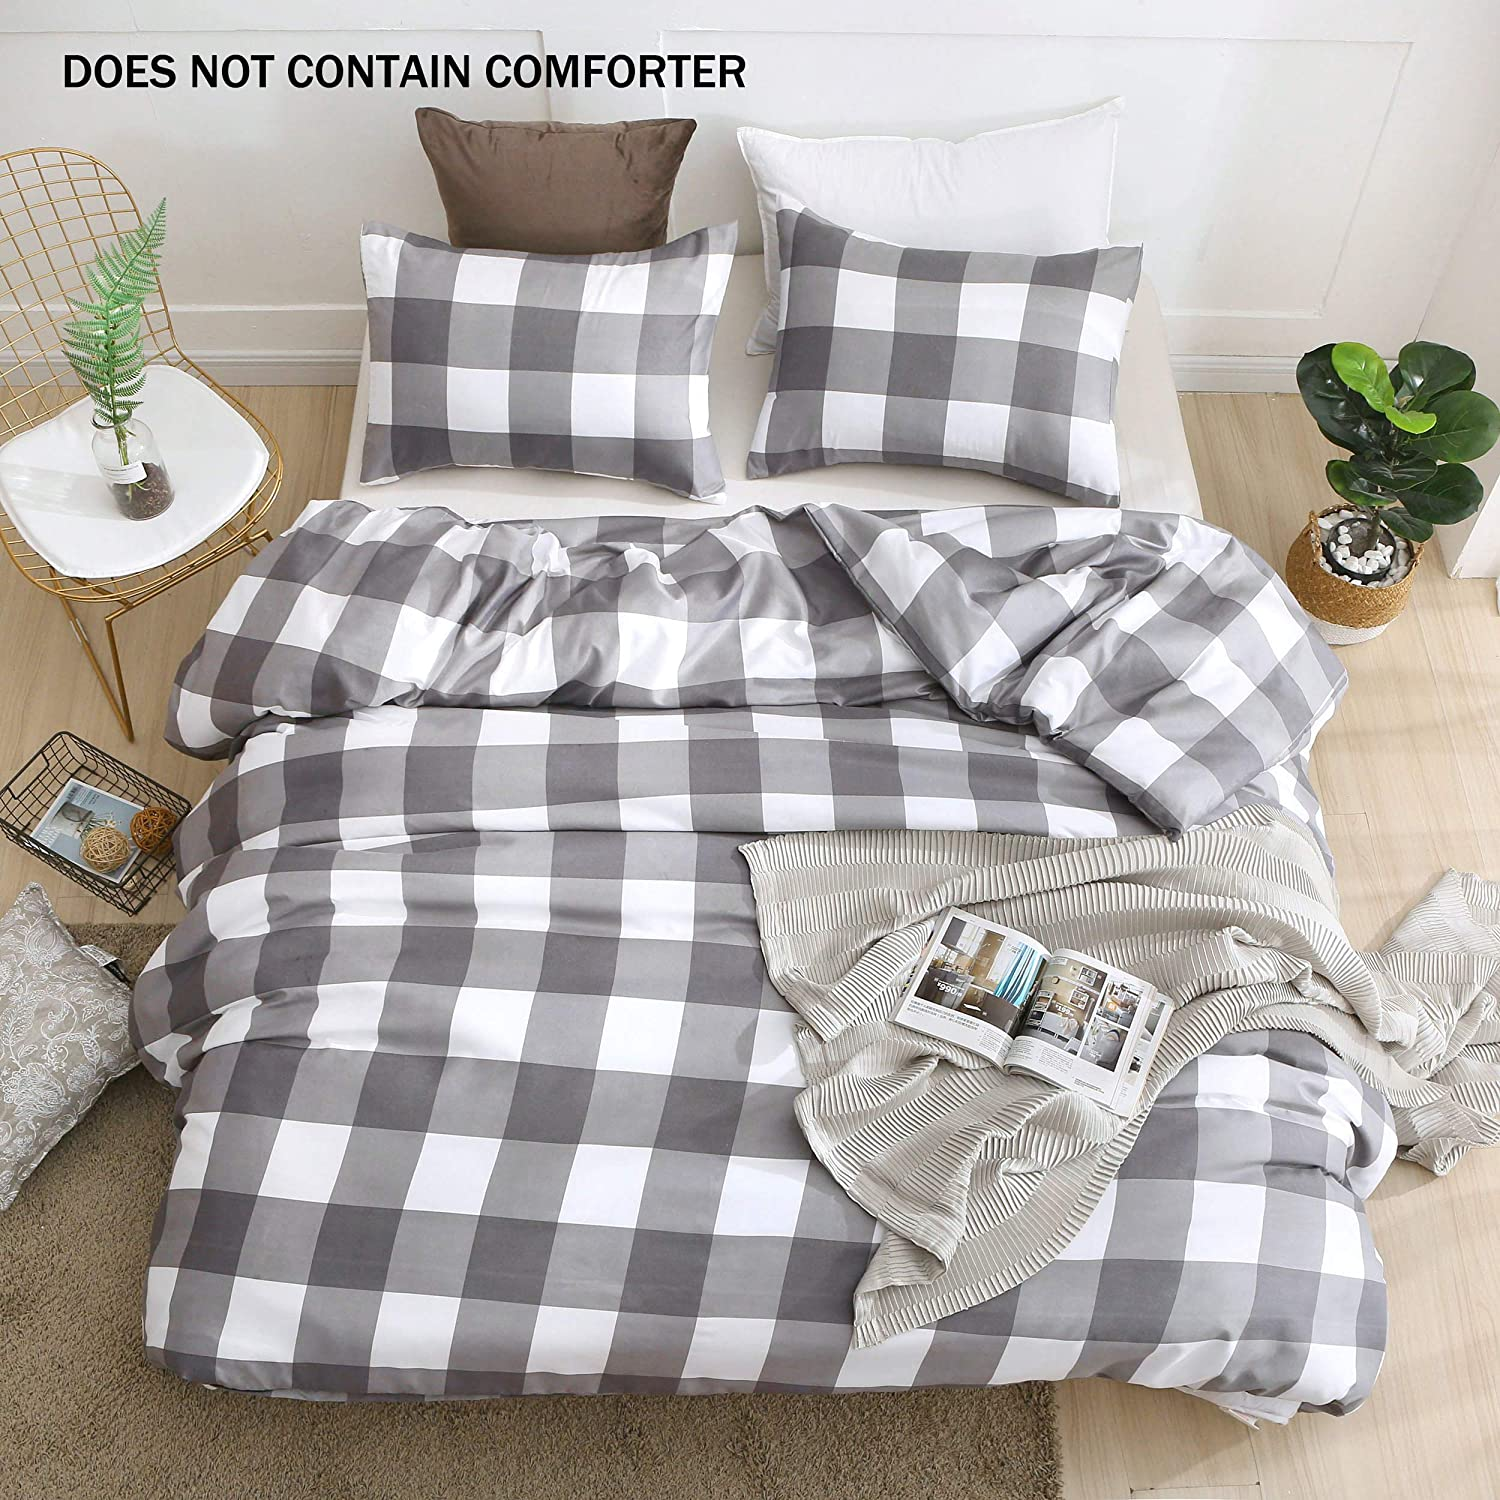 LSSAWZH QYsong Grey and White Plaid Duvet Cover Queen (90x90 Inch), 3pc Include 1 Gird Geometric Checker Pattern Printed Duvet Cover Zipper Closure and 2 Pillowcase, Bedding Set for Men and Women